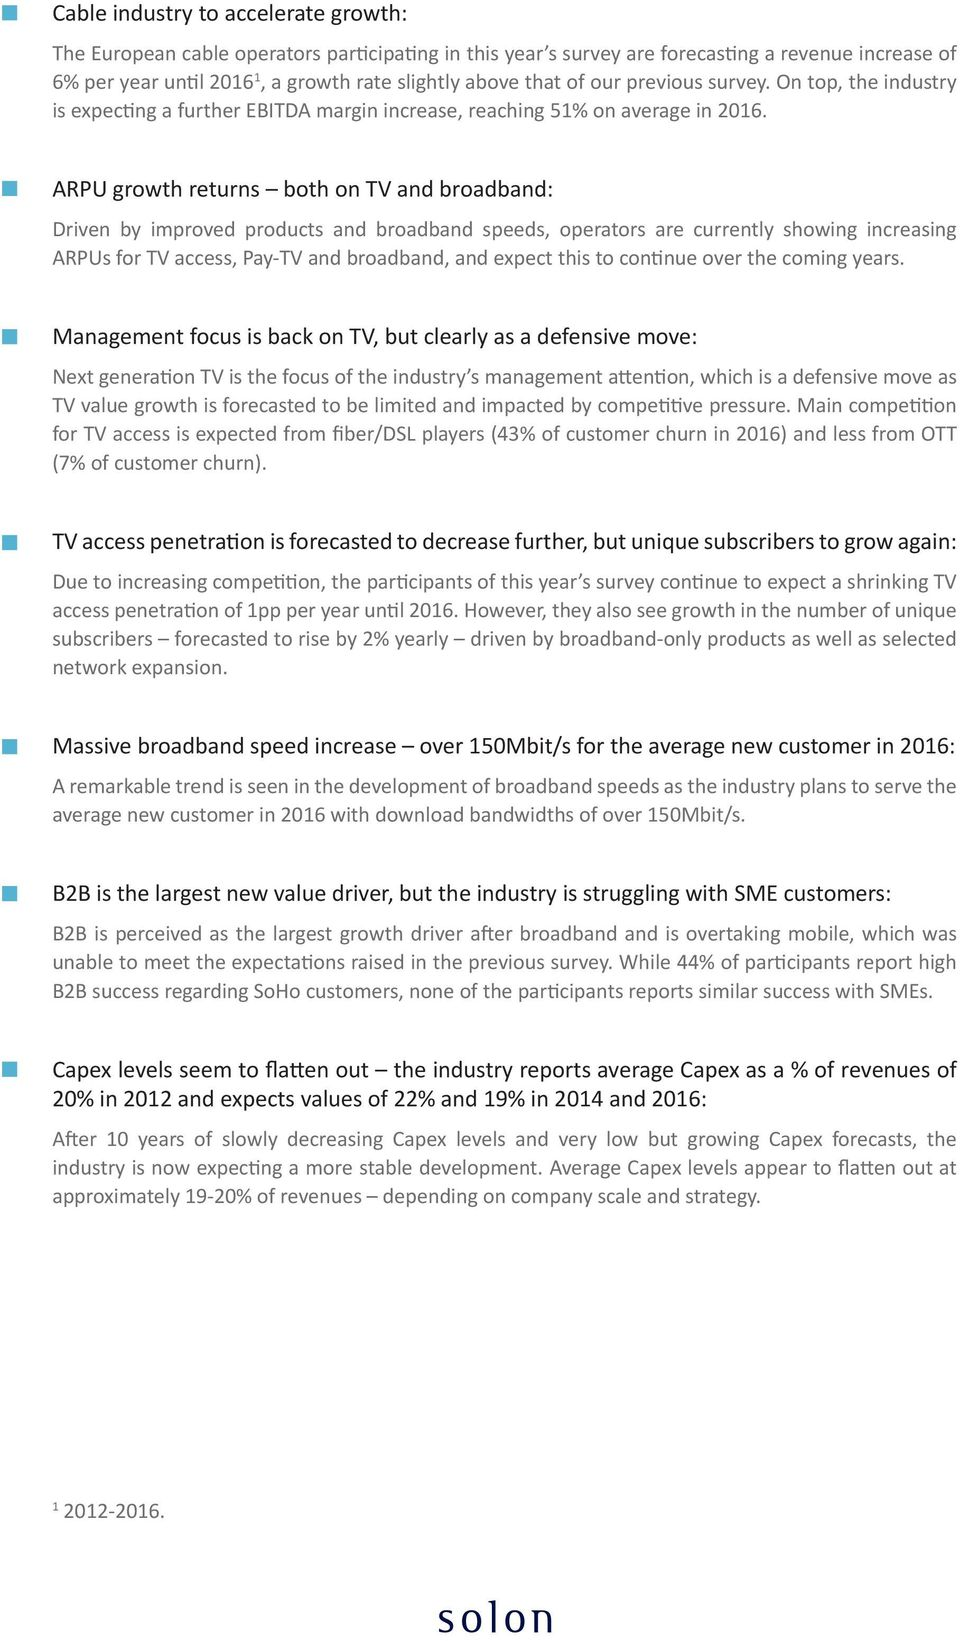 ARPU growth returns both on TV and broadband: Driven by improved products and broadband speeds, operators are currently showing increasing ARPUs for TV access, Pay-TV and broadband, and expect this